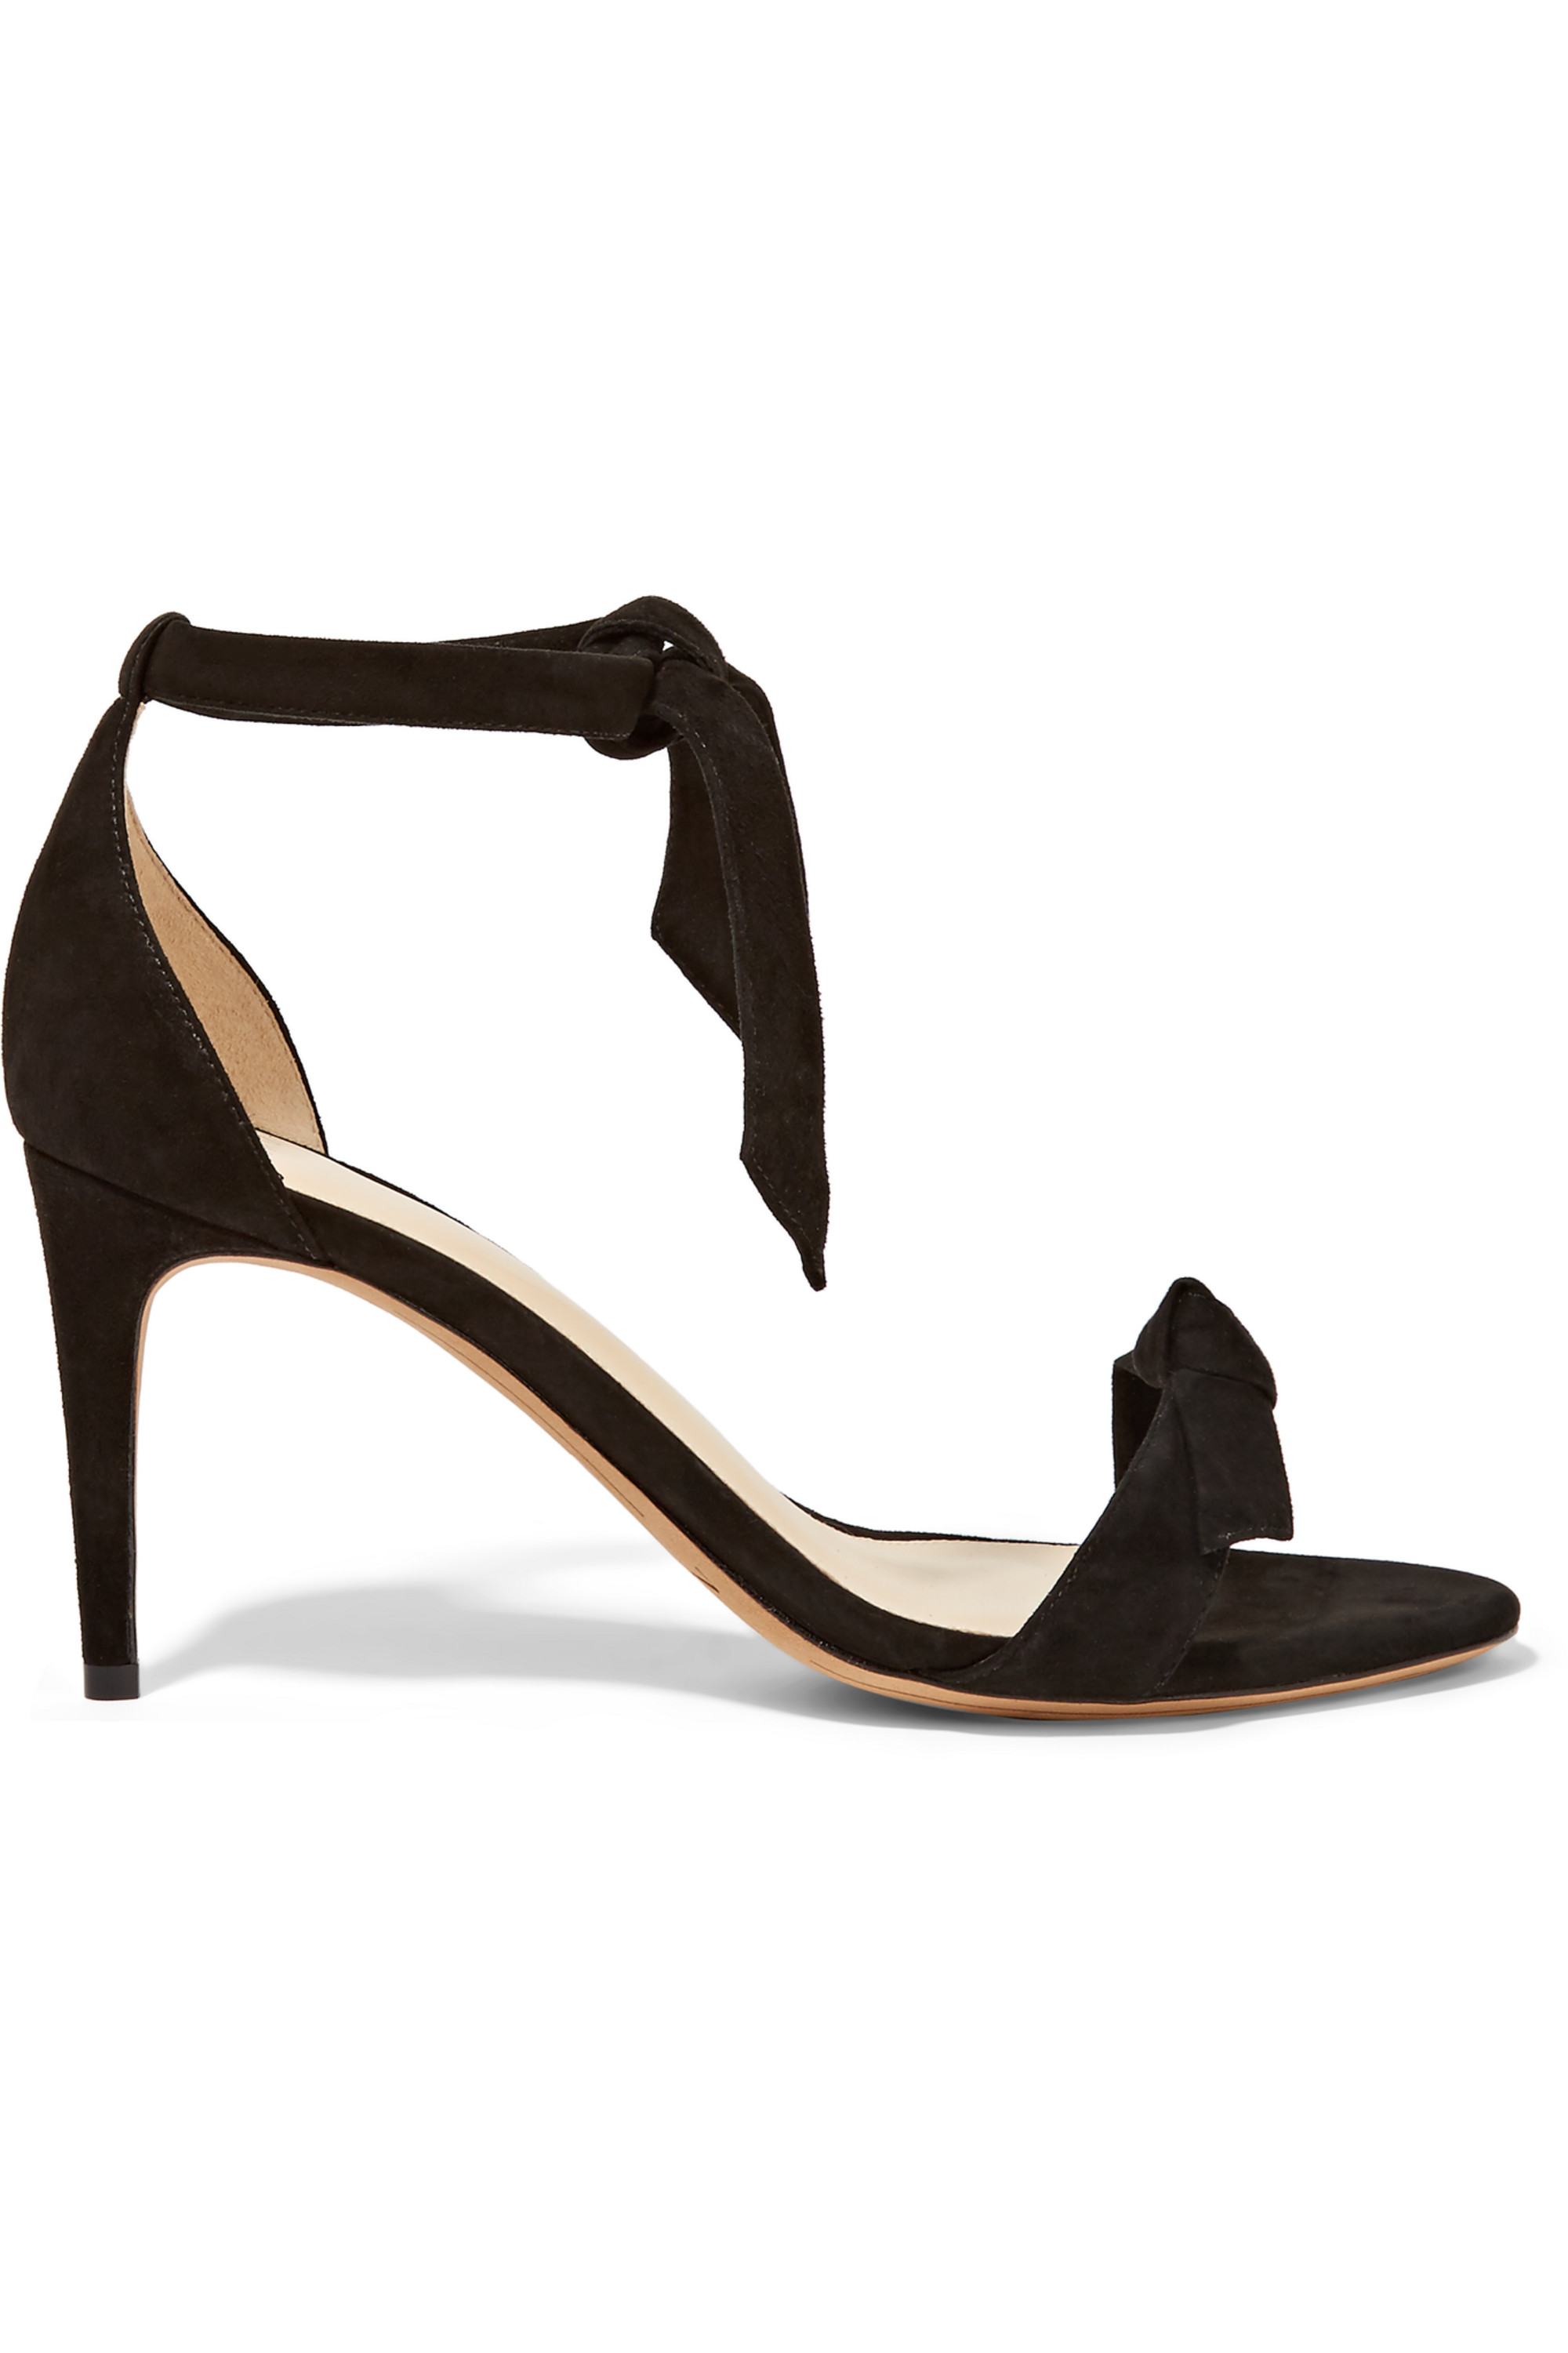 Alexandre Birman Patty bow-embellished suede sandals